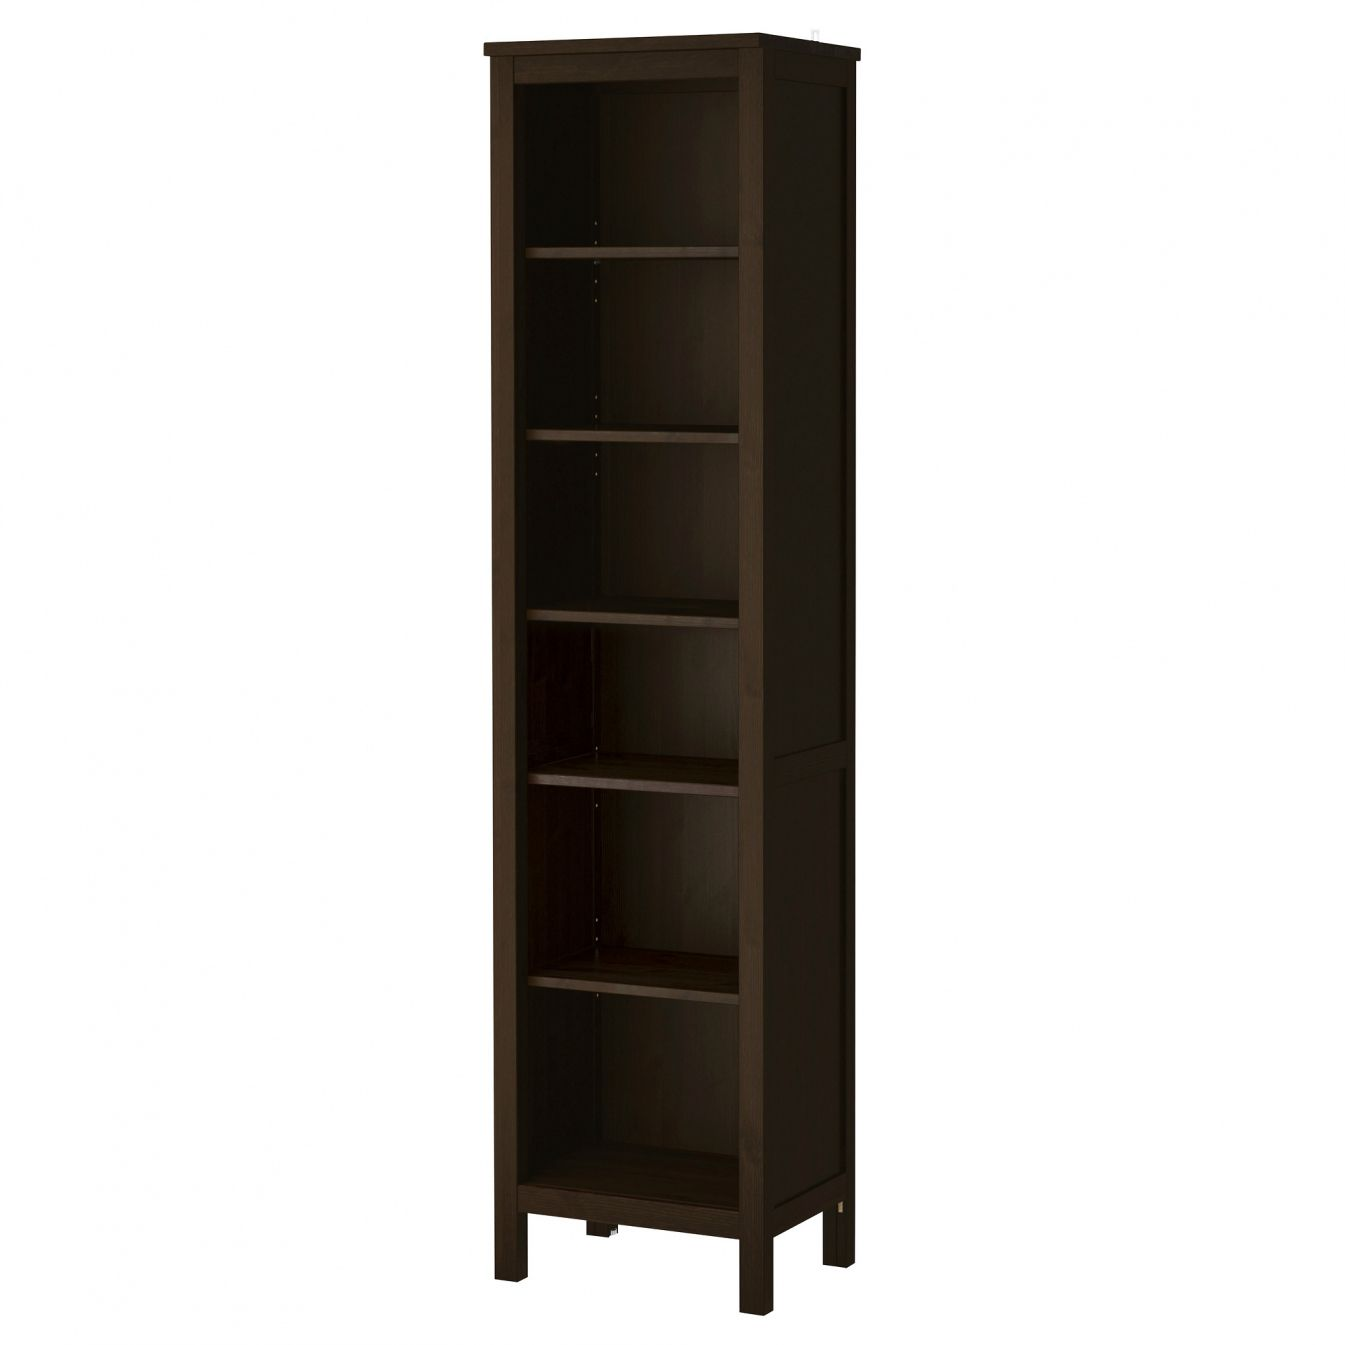 100 17 Inch Wide Bookcase Modern European Furniture Check More At Http